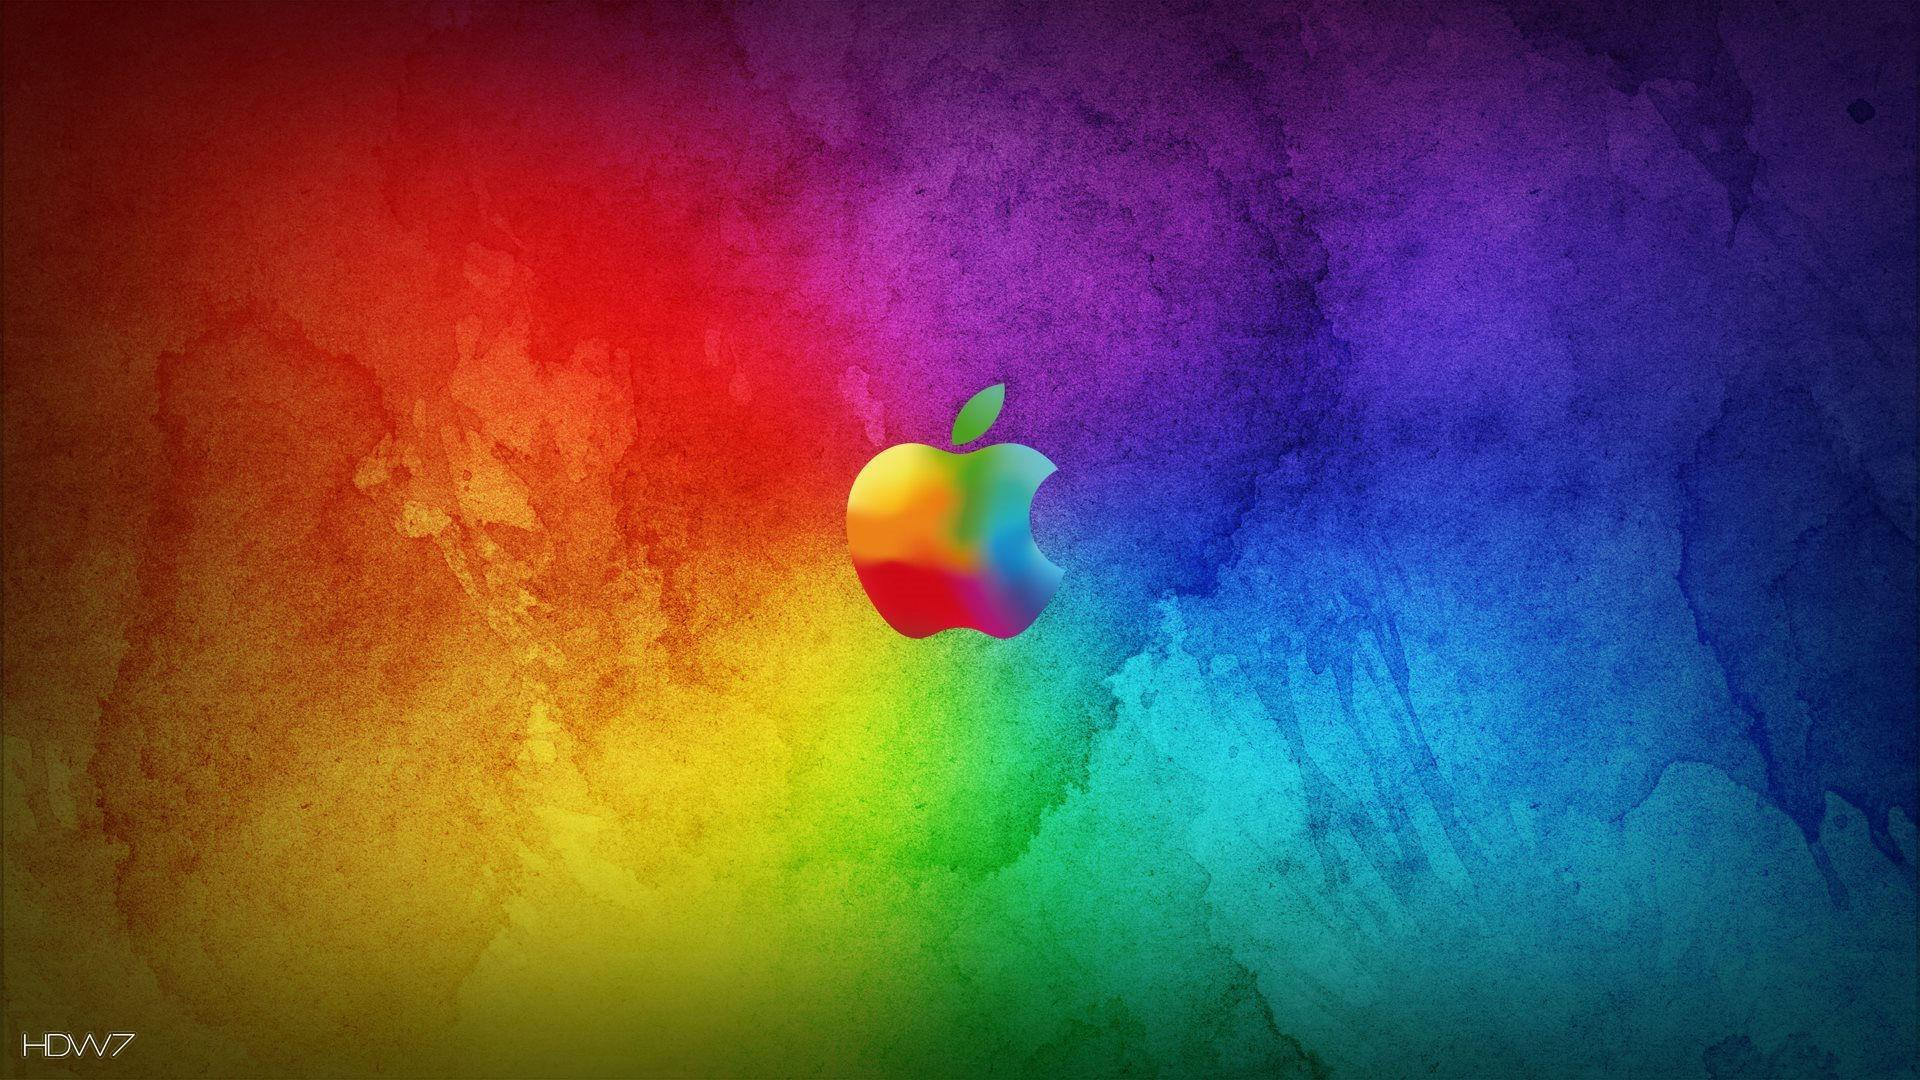 Apple-Red-And-Black-Desktop-Green-Rainbow-Black-And-1920×1080-Apple-Desktop-wallpaper-wpc9002314